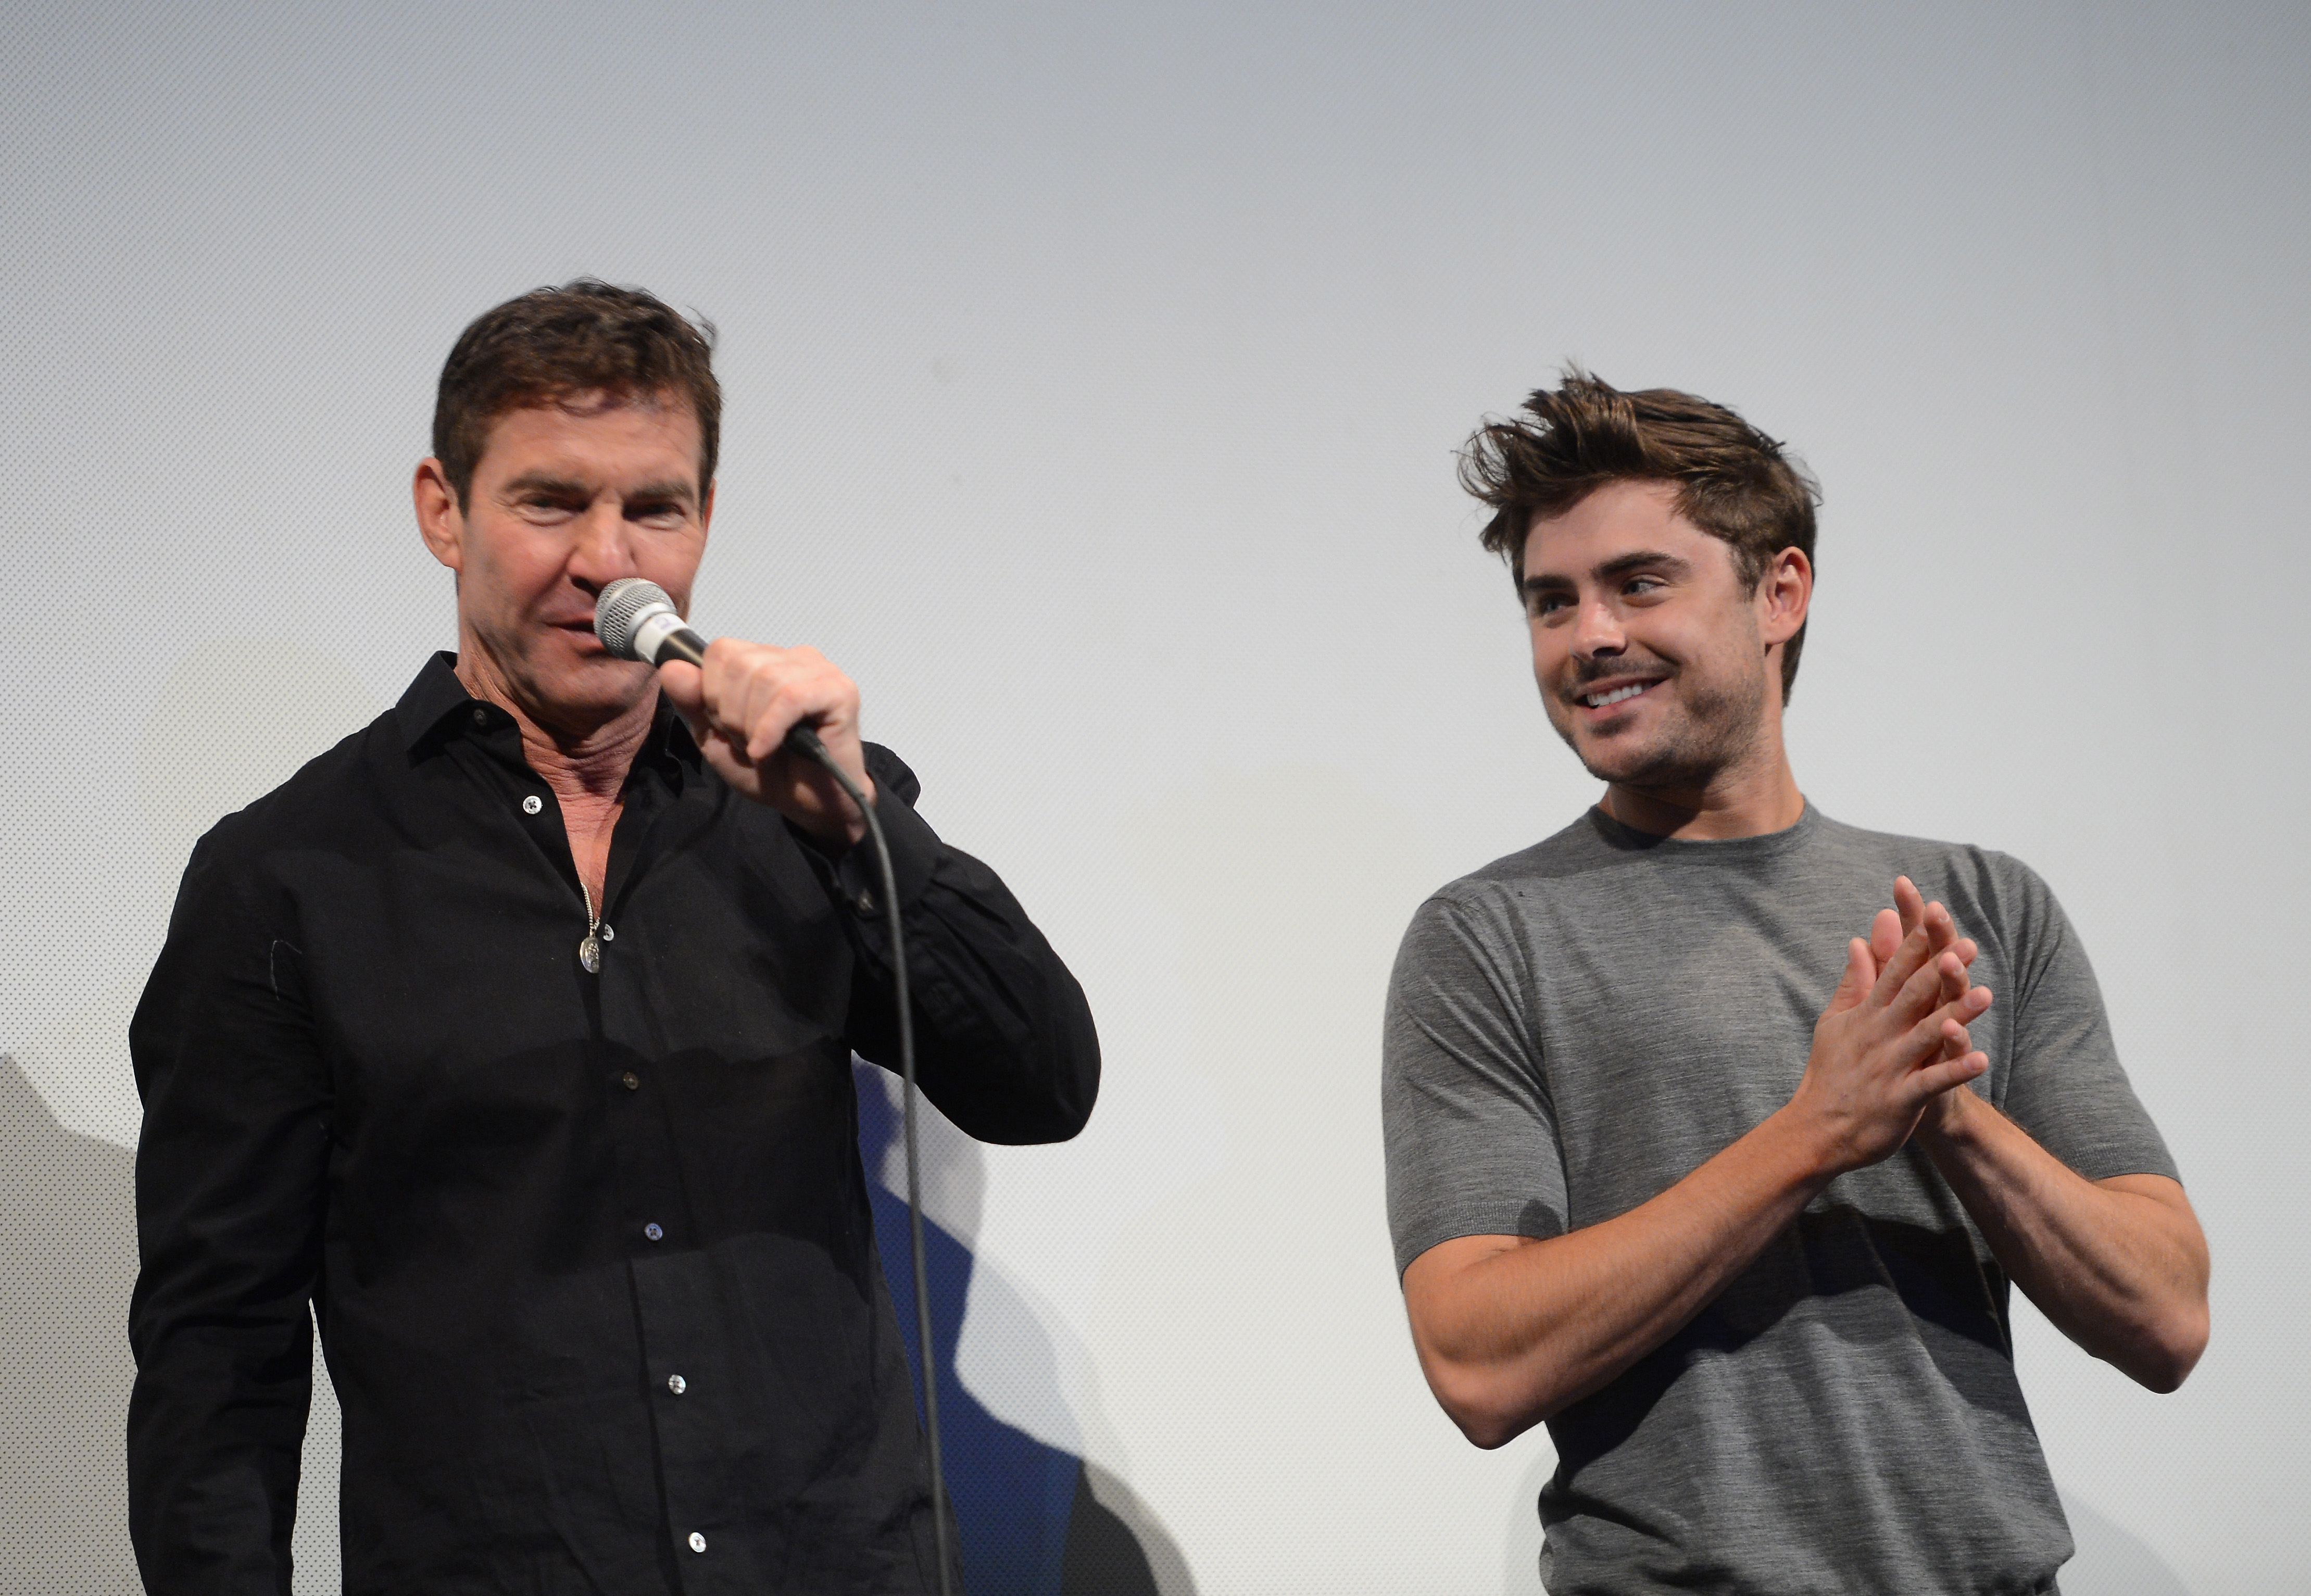 Zac Efron and Dennis Quaid attended a Q&A for their film At Any Price at SXSW.